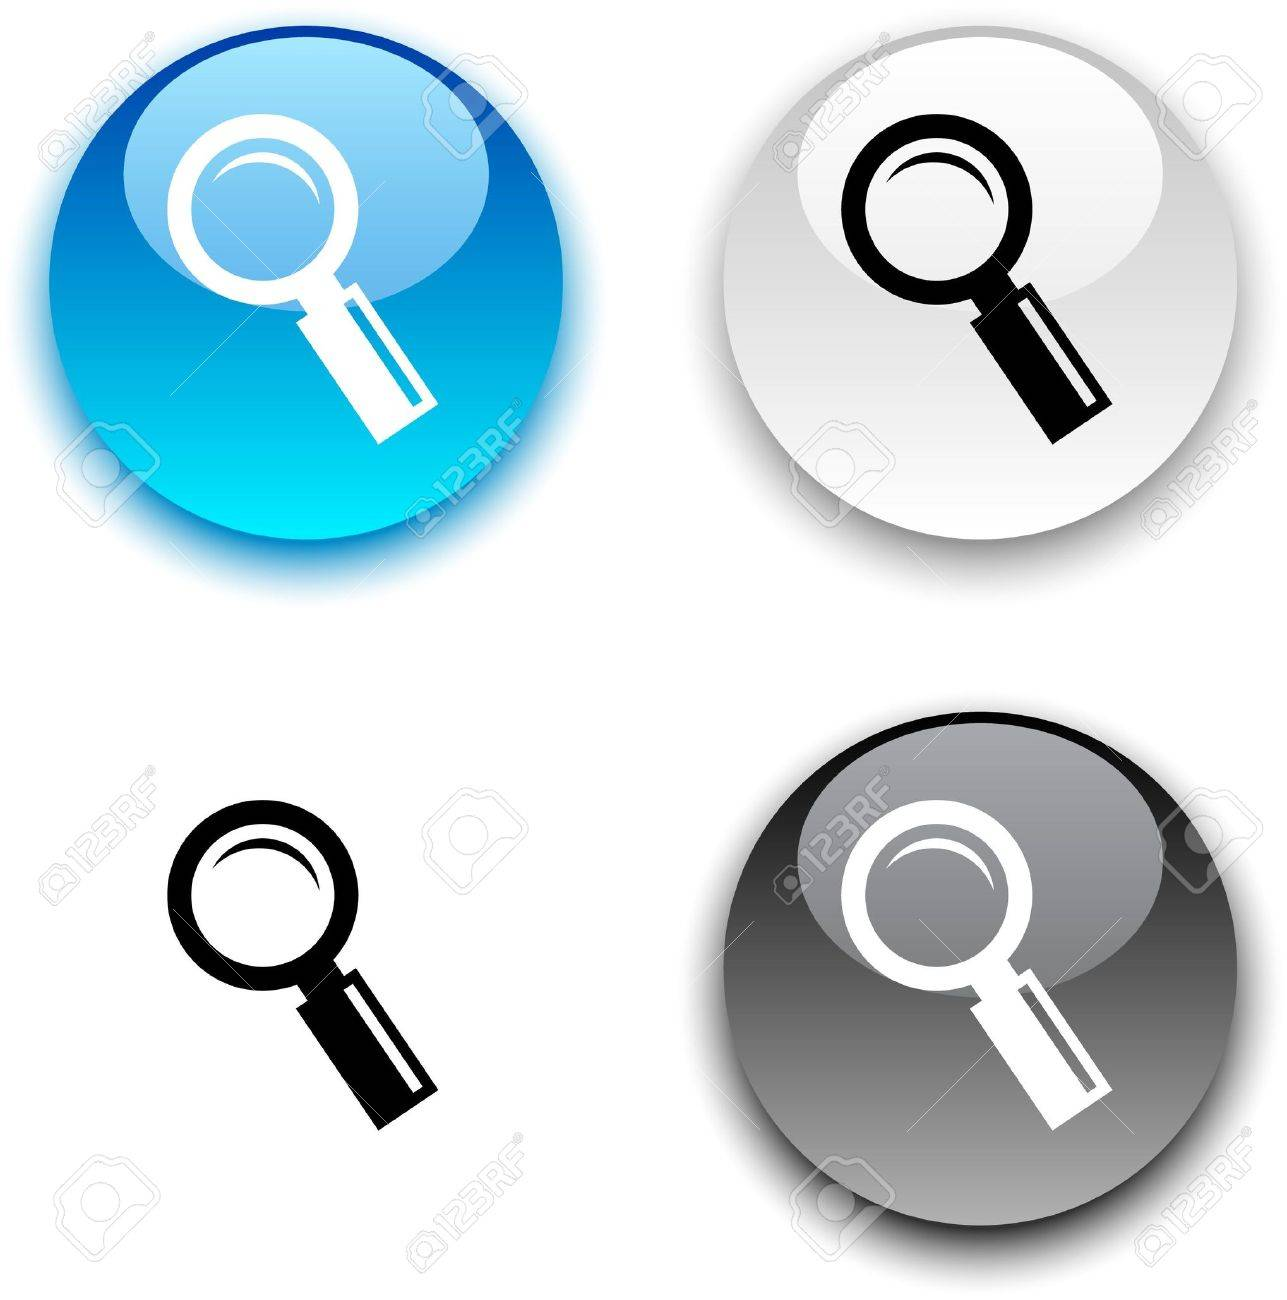 Search Stock Photos magnifying glass Searching